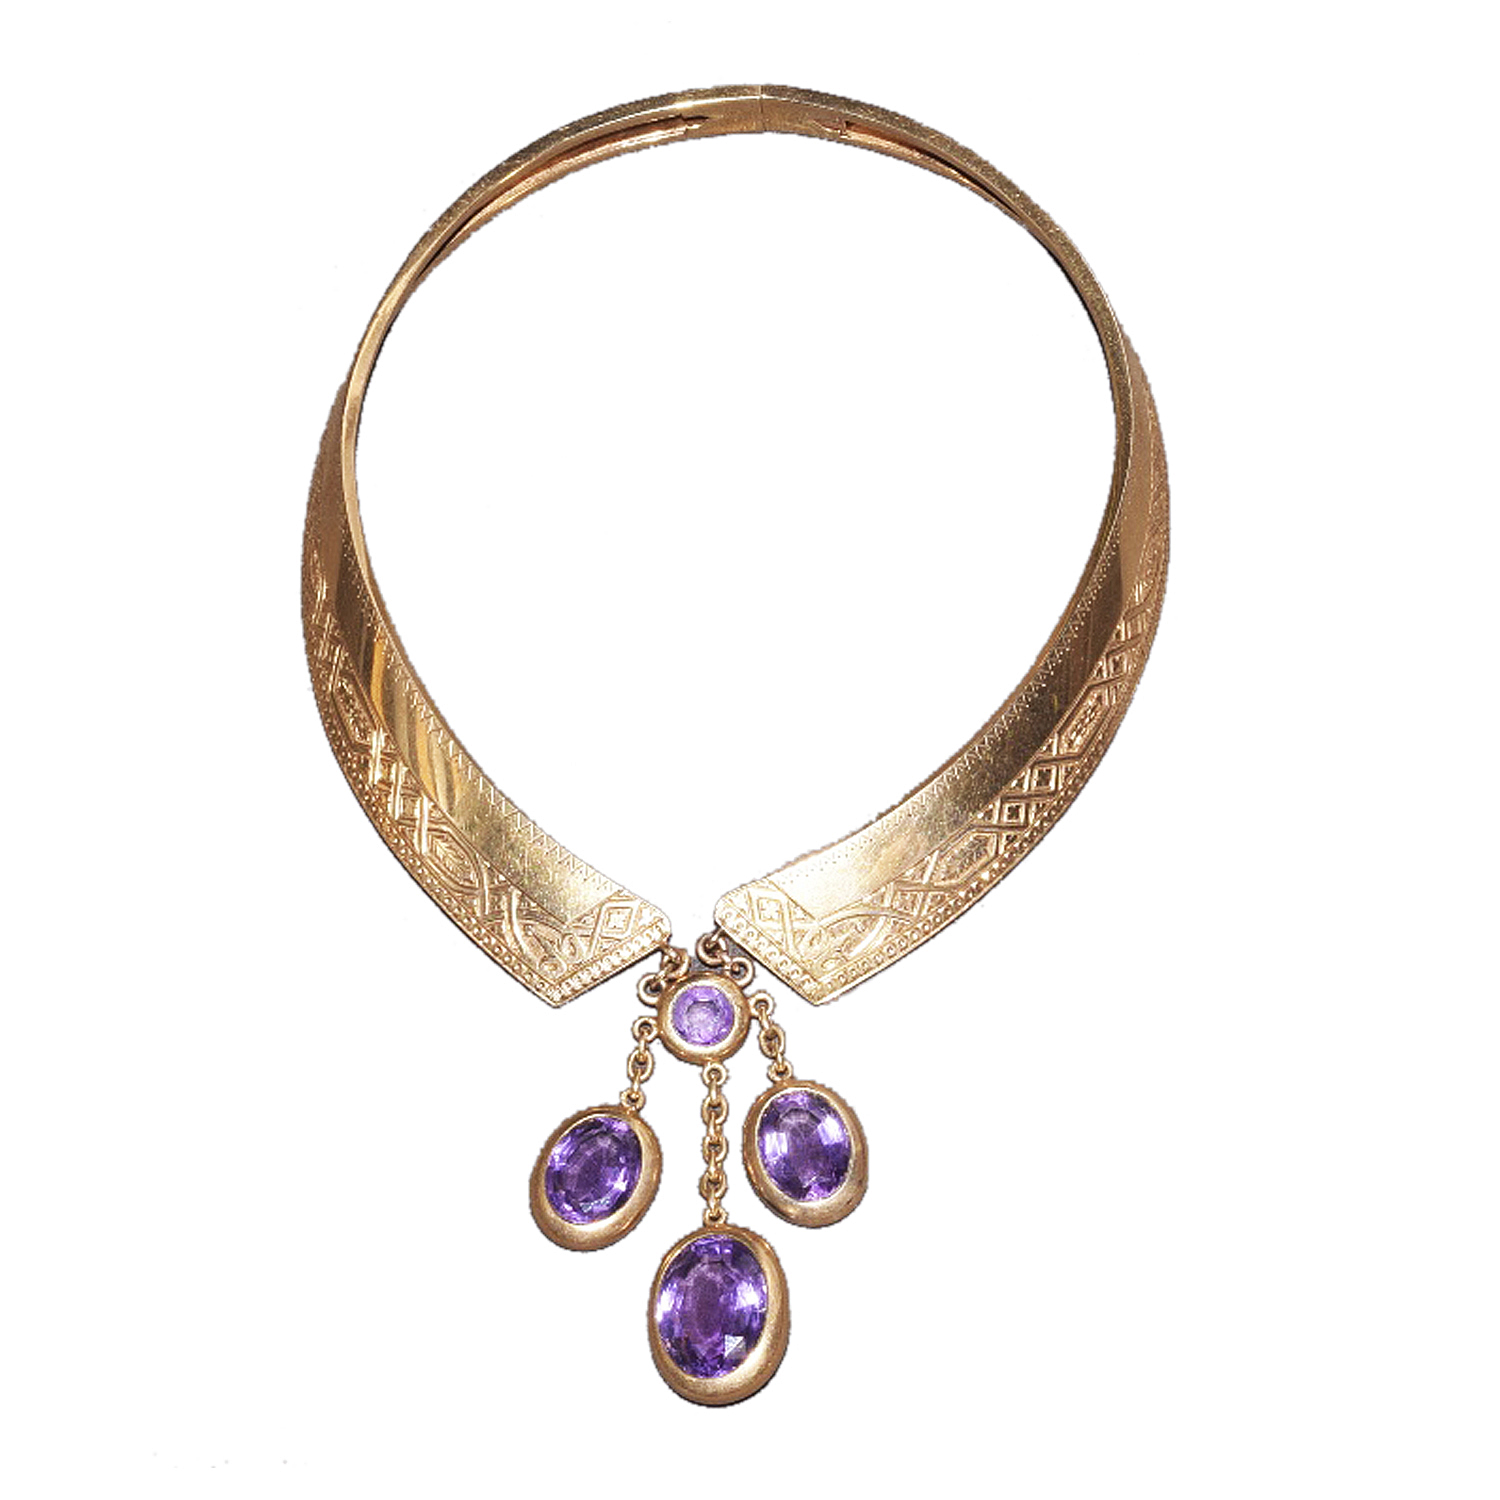 Antique 18K Yellow Gold and Amethyst Collar Necklace Style N-40816-FL-0-0